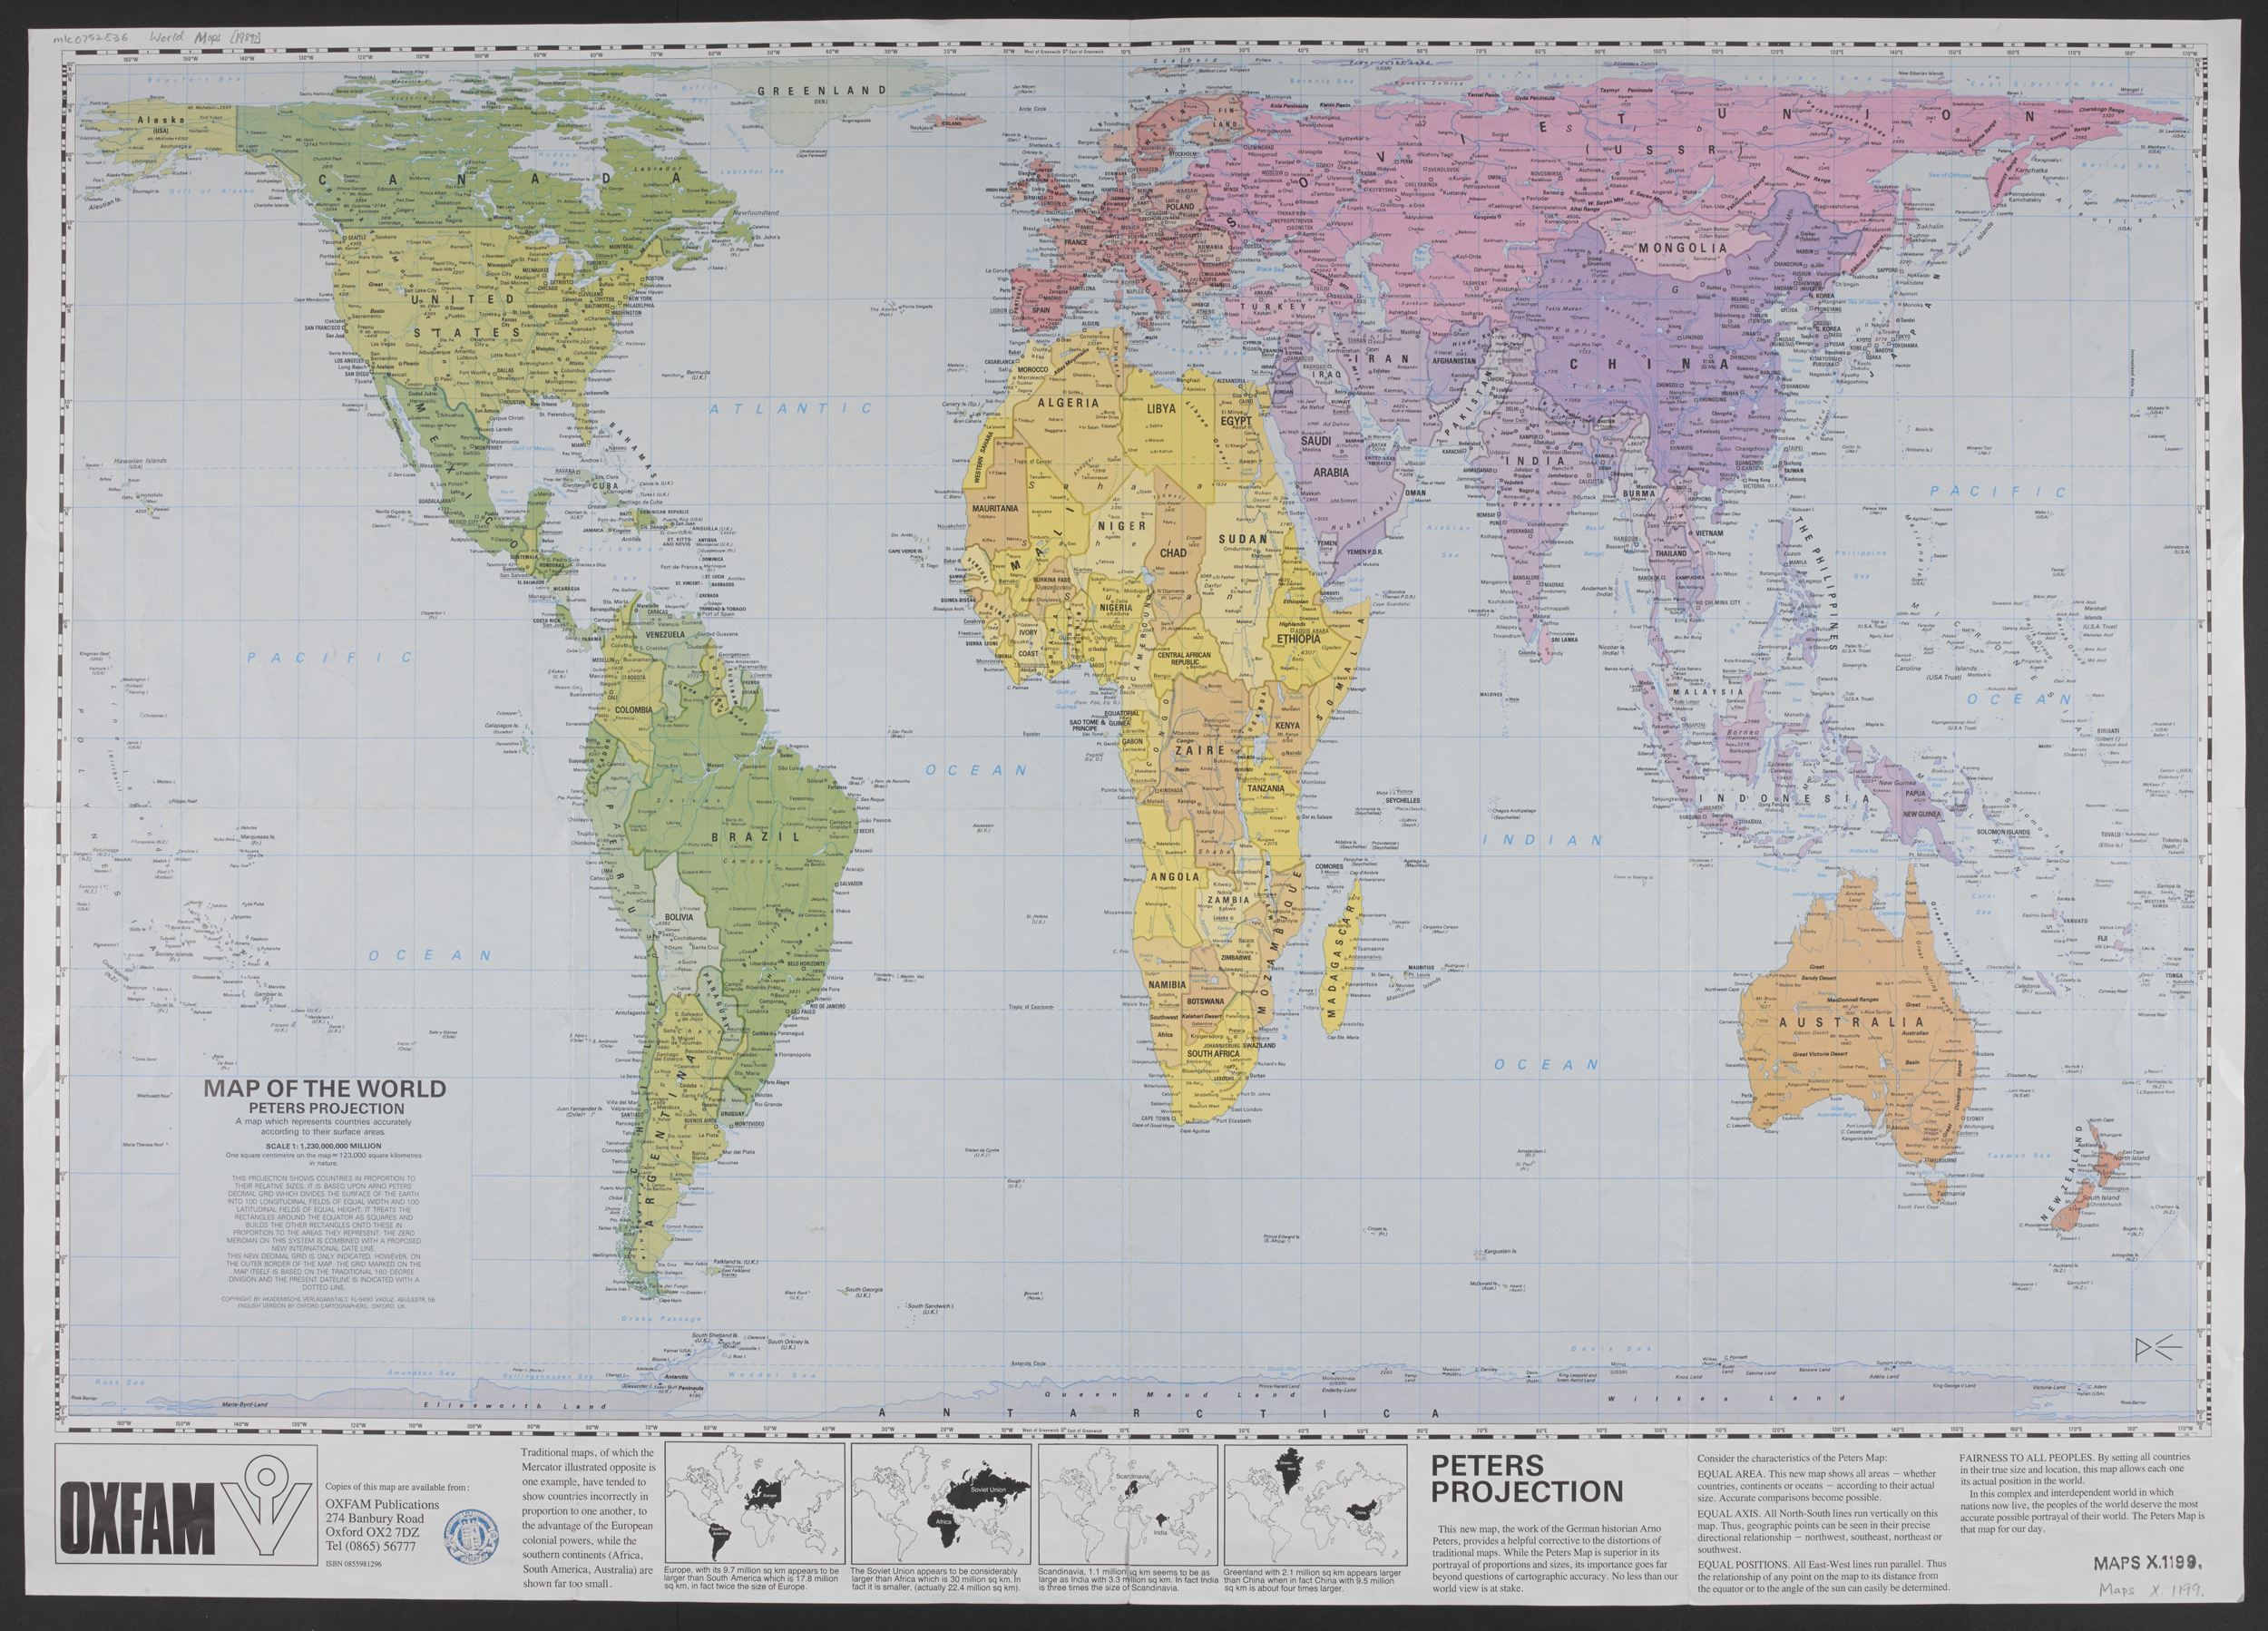 The Peters Projection World Map.Map Of The World Peters Projection The British Library